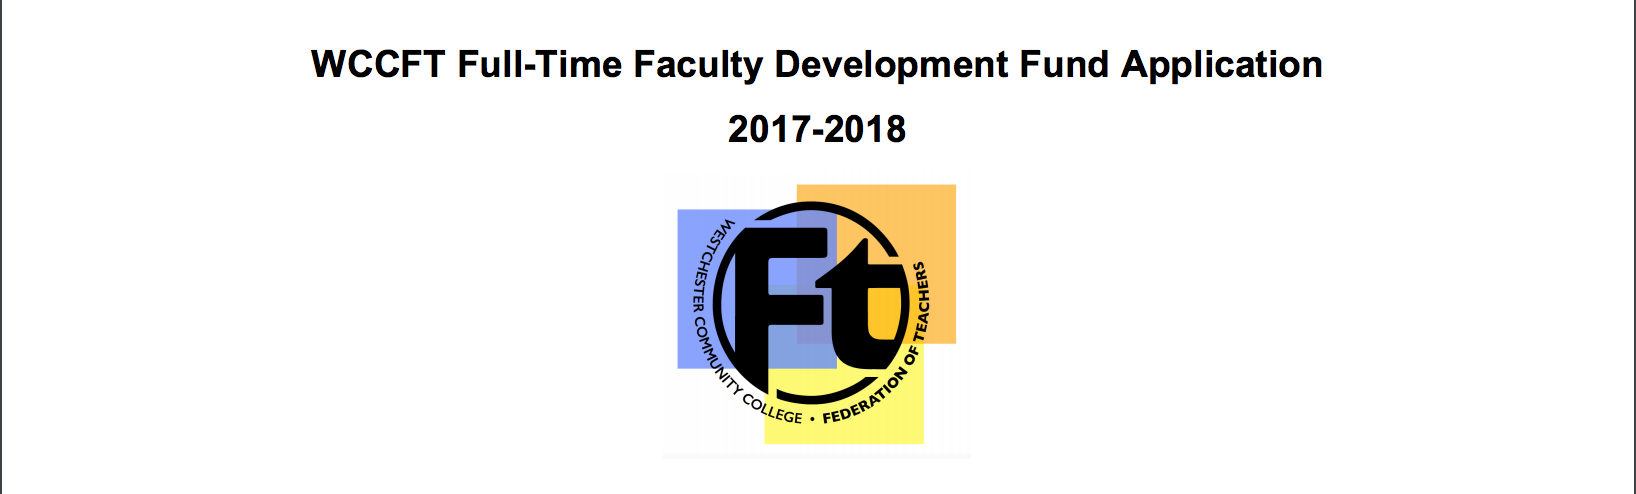 Full-Time Faculty Development Fund Form